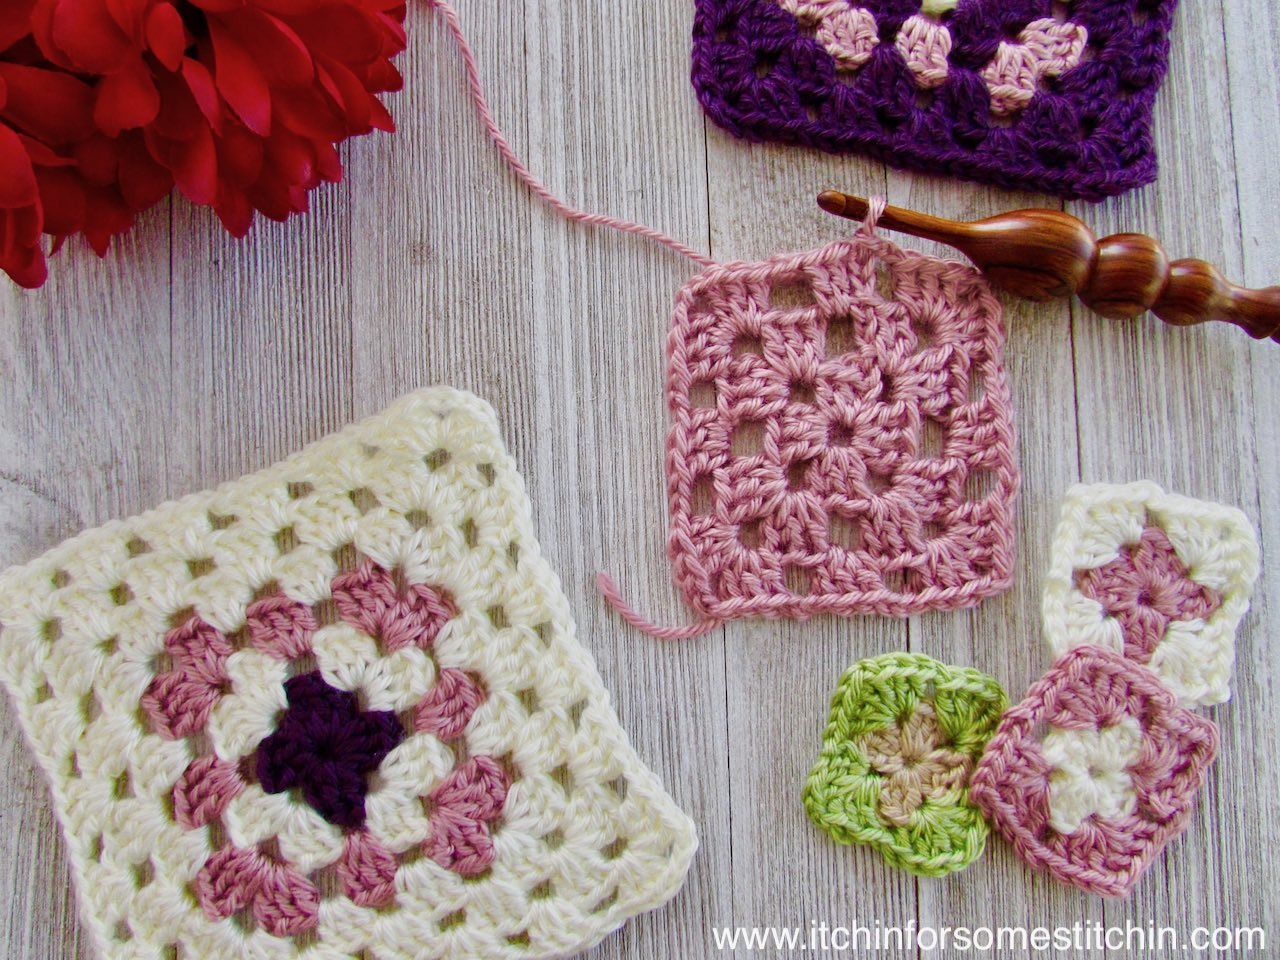 How to Crochet a Basic Granny Square by https://www.itchinforsomestitchin.com